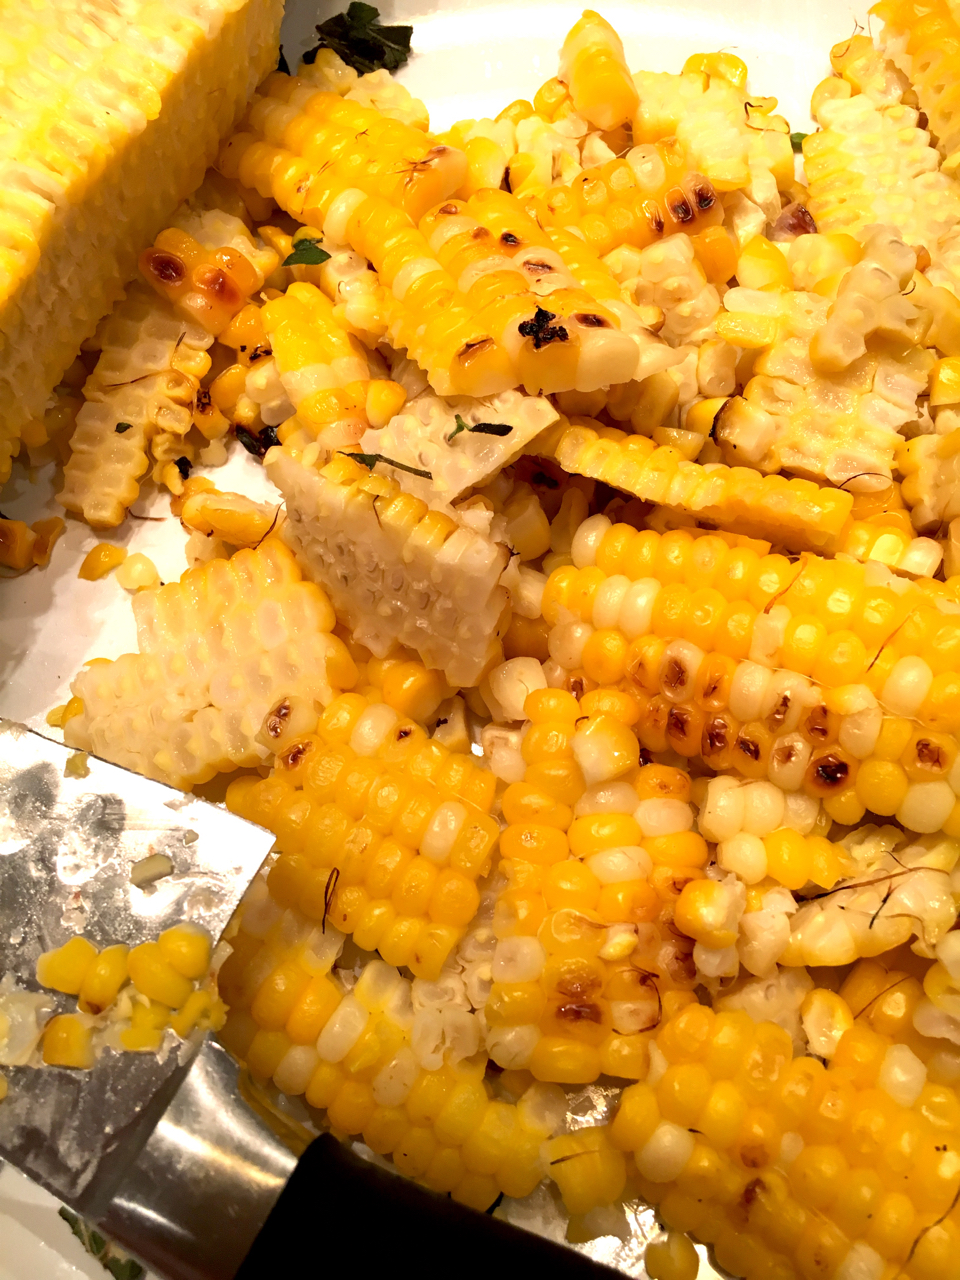 Grilled corn off the cob